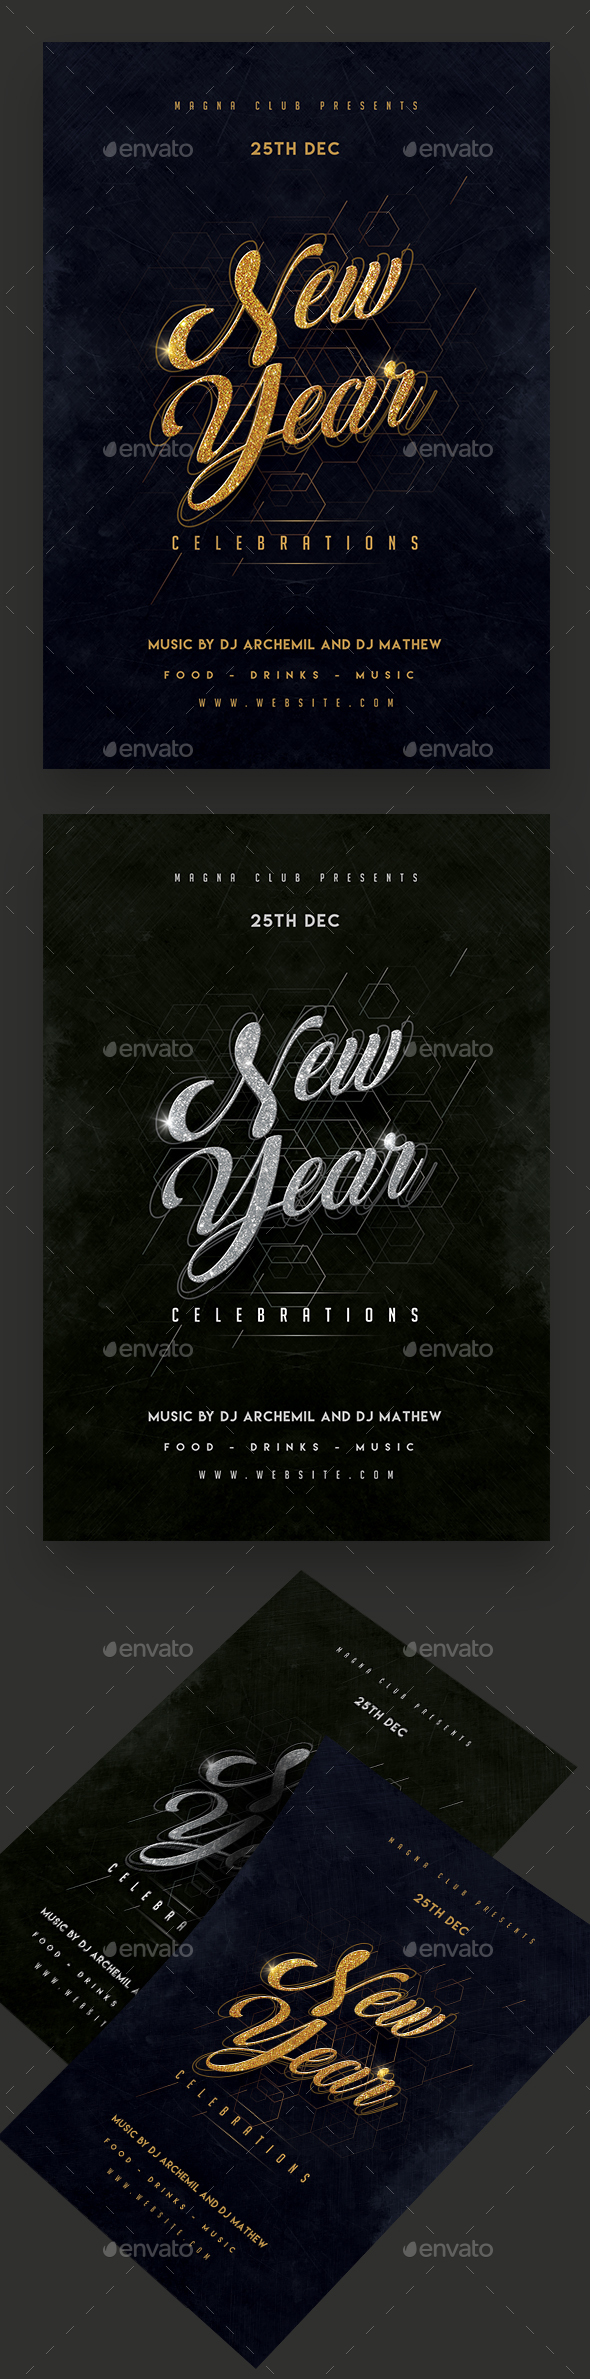 New Year Celebration Party Flyer - Clubs & Parties Events